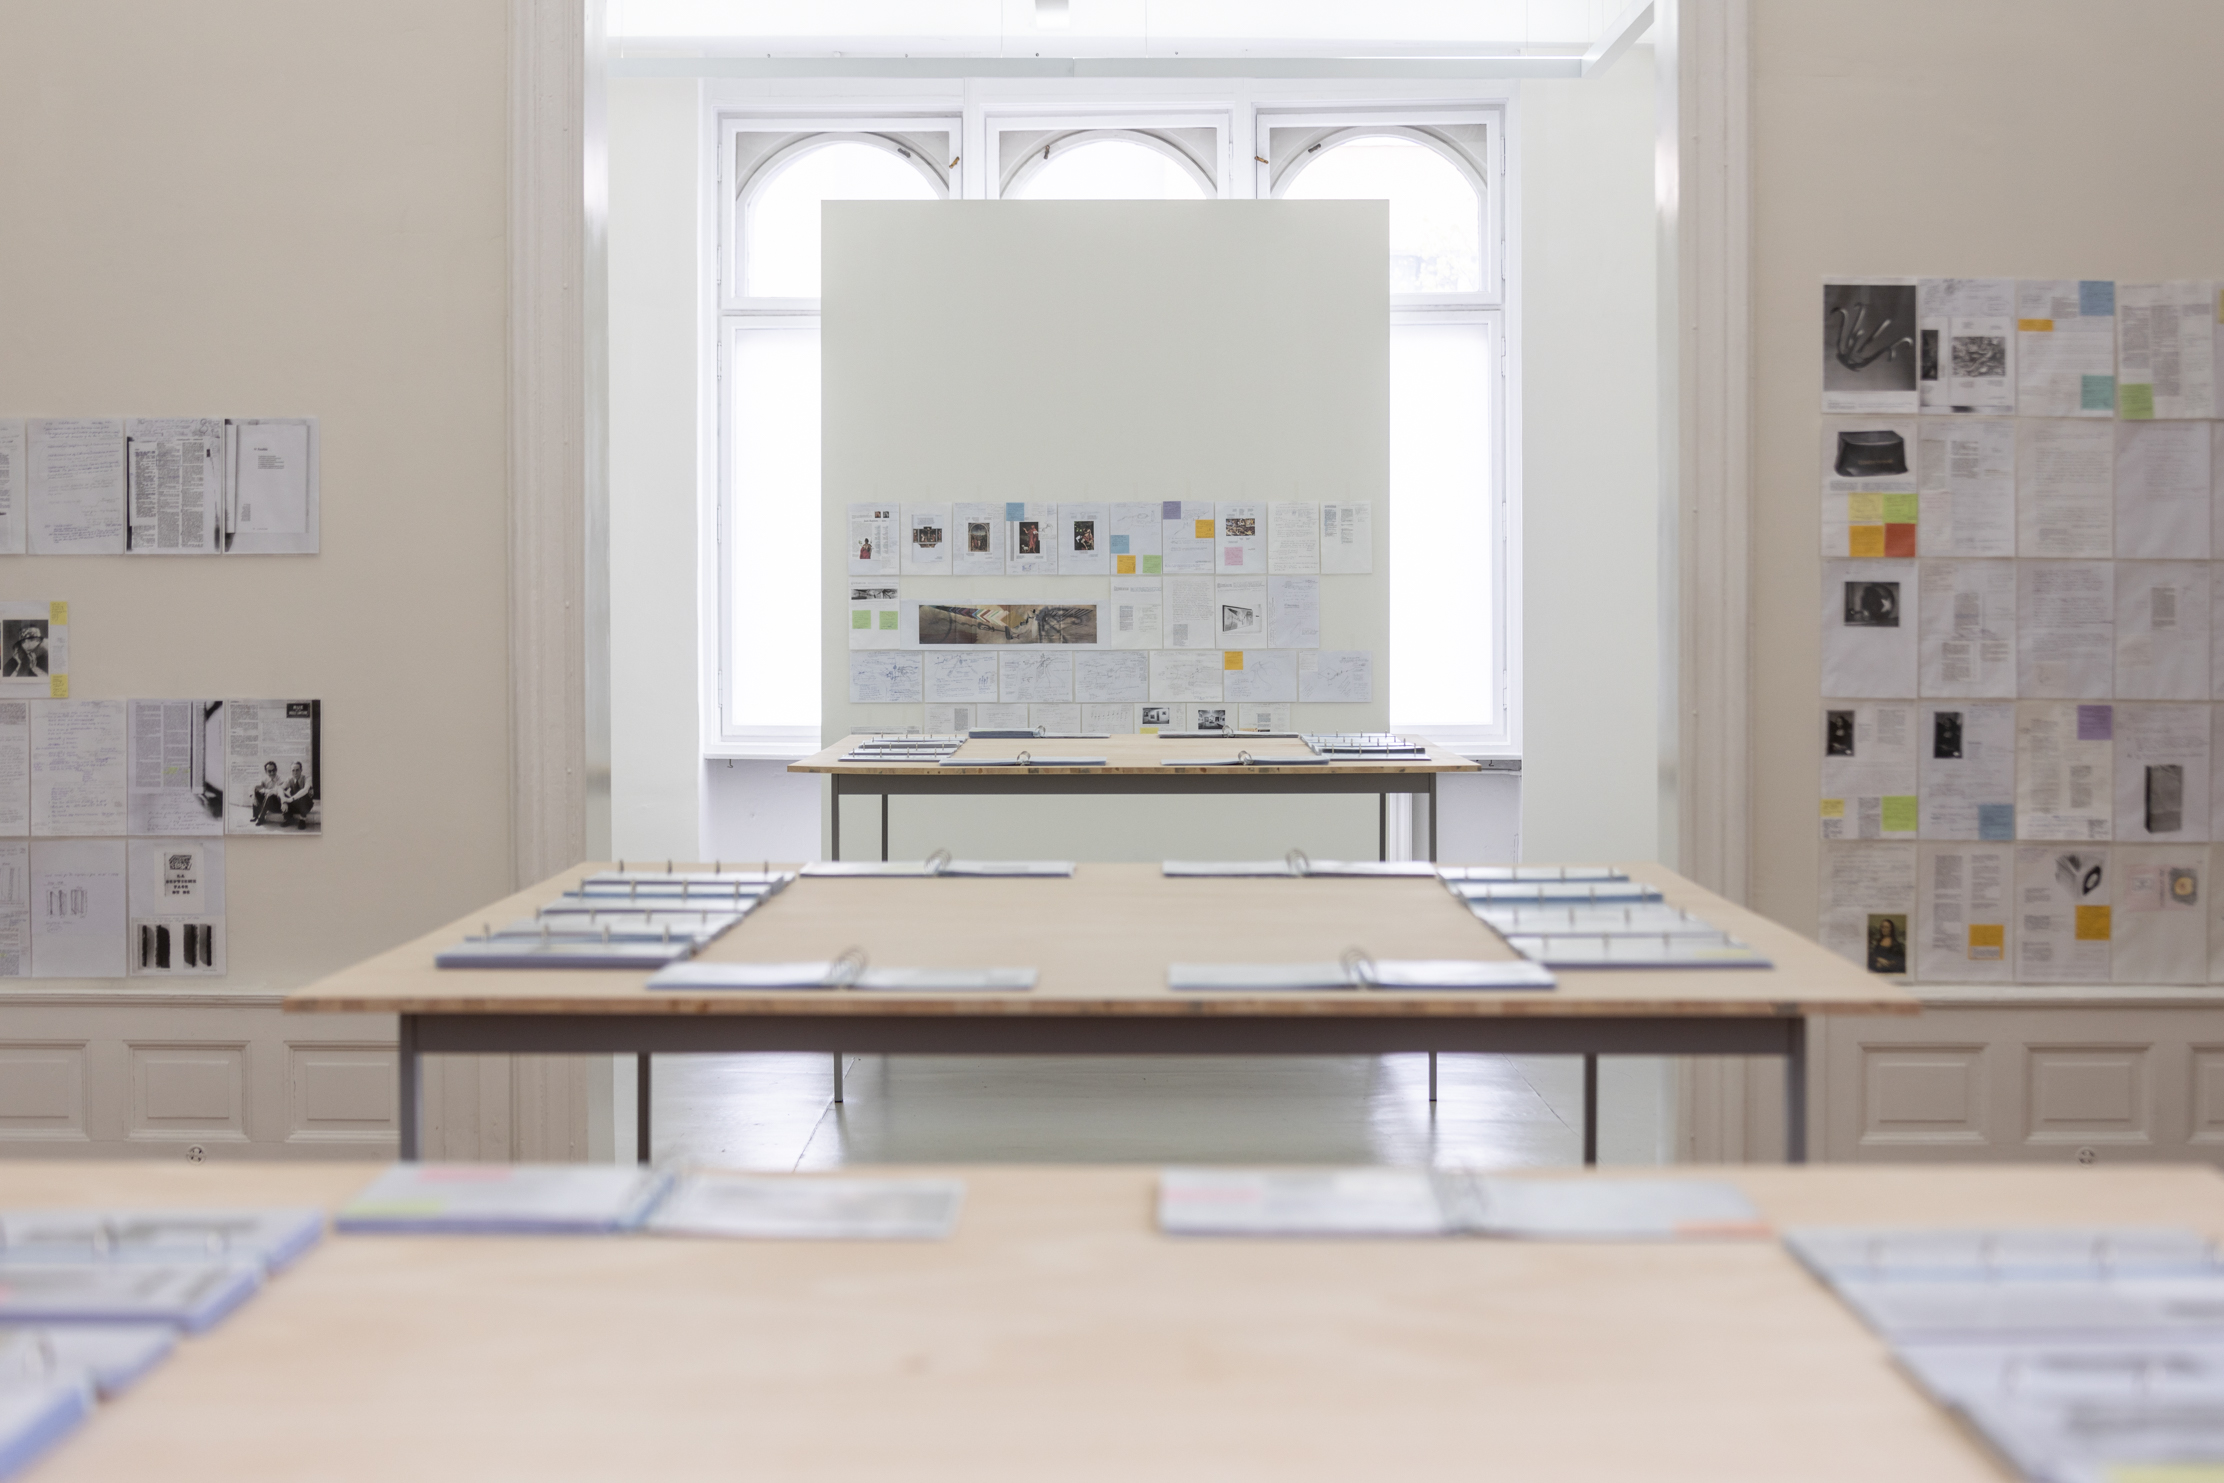 Installation views Bethan Huws: Reading Duchamp - Research Notes 2007-2014, Kunstsaele Berlin, 2019 © Bethan Huws & VG-Bild-Kunst, Bonn 2019; Photo: Frank Sperling.